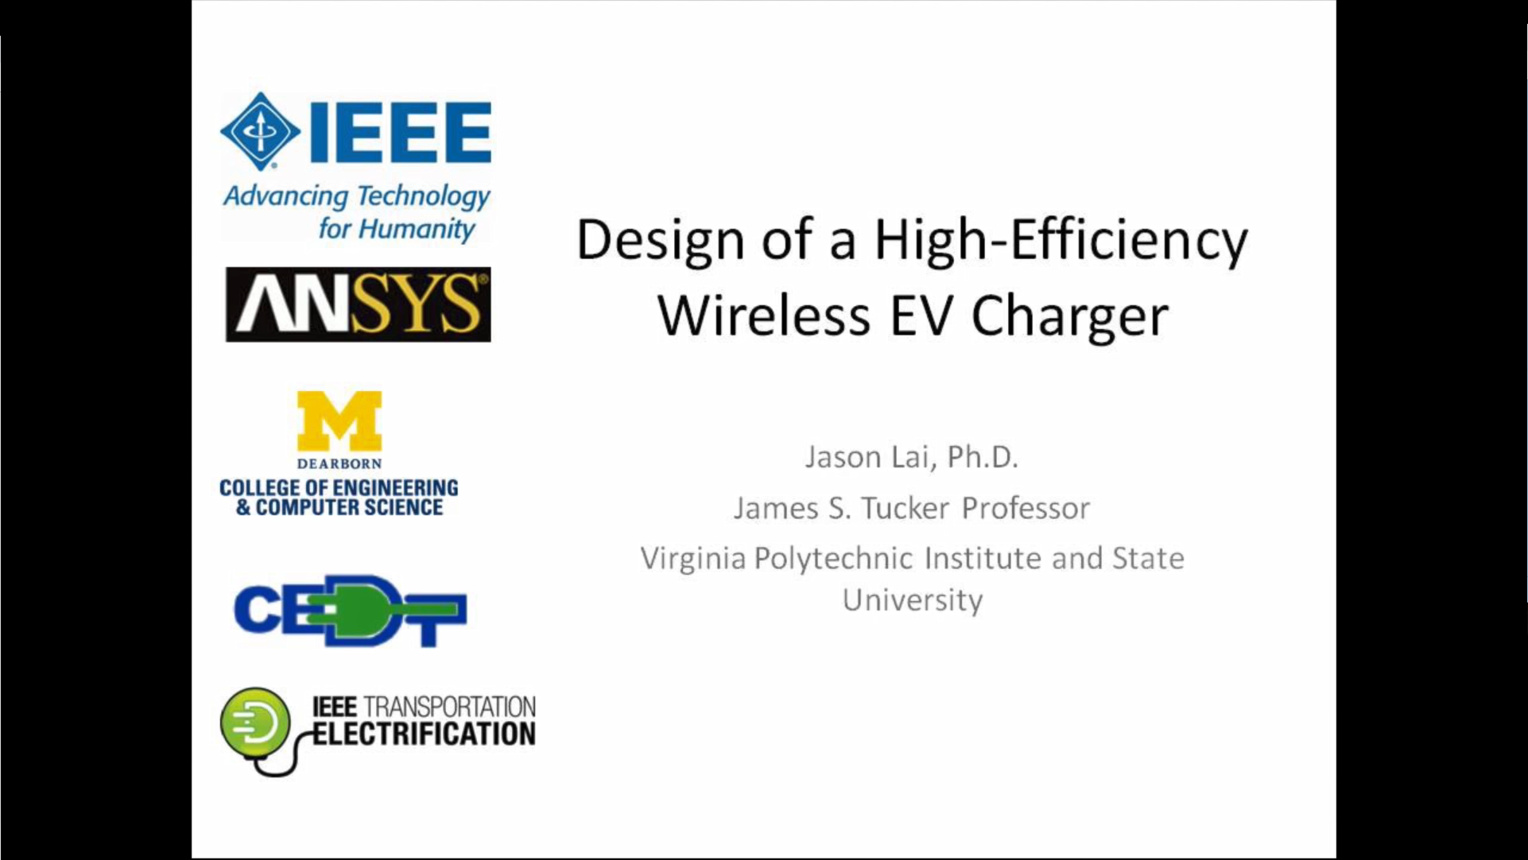 Design of a High-Efficiency Wireless EV Charger